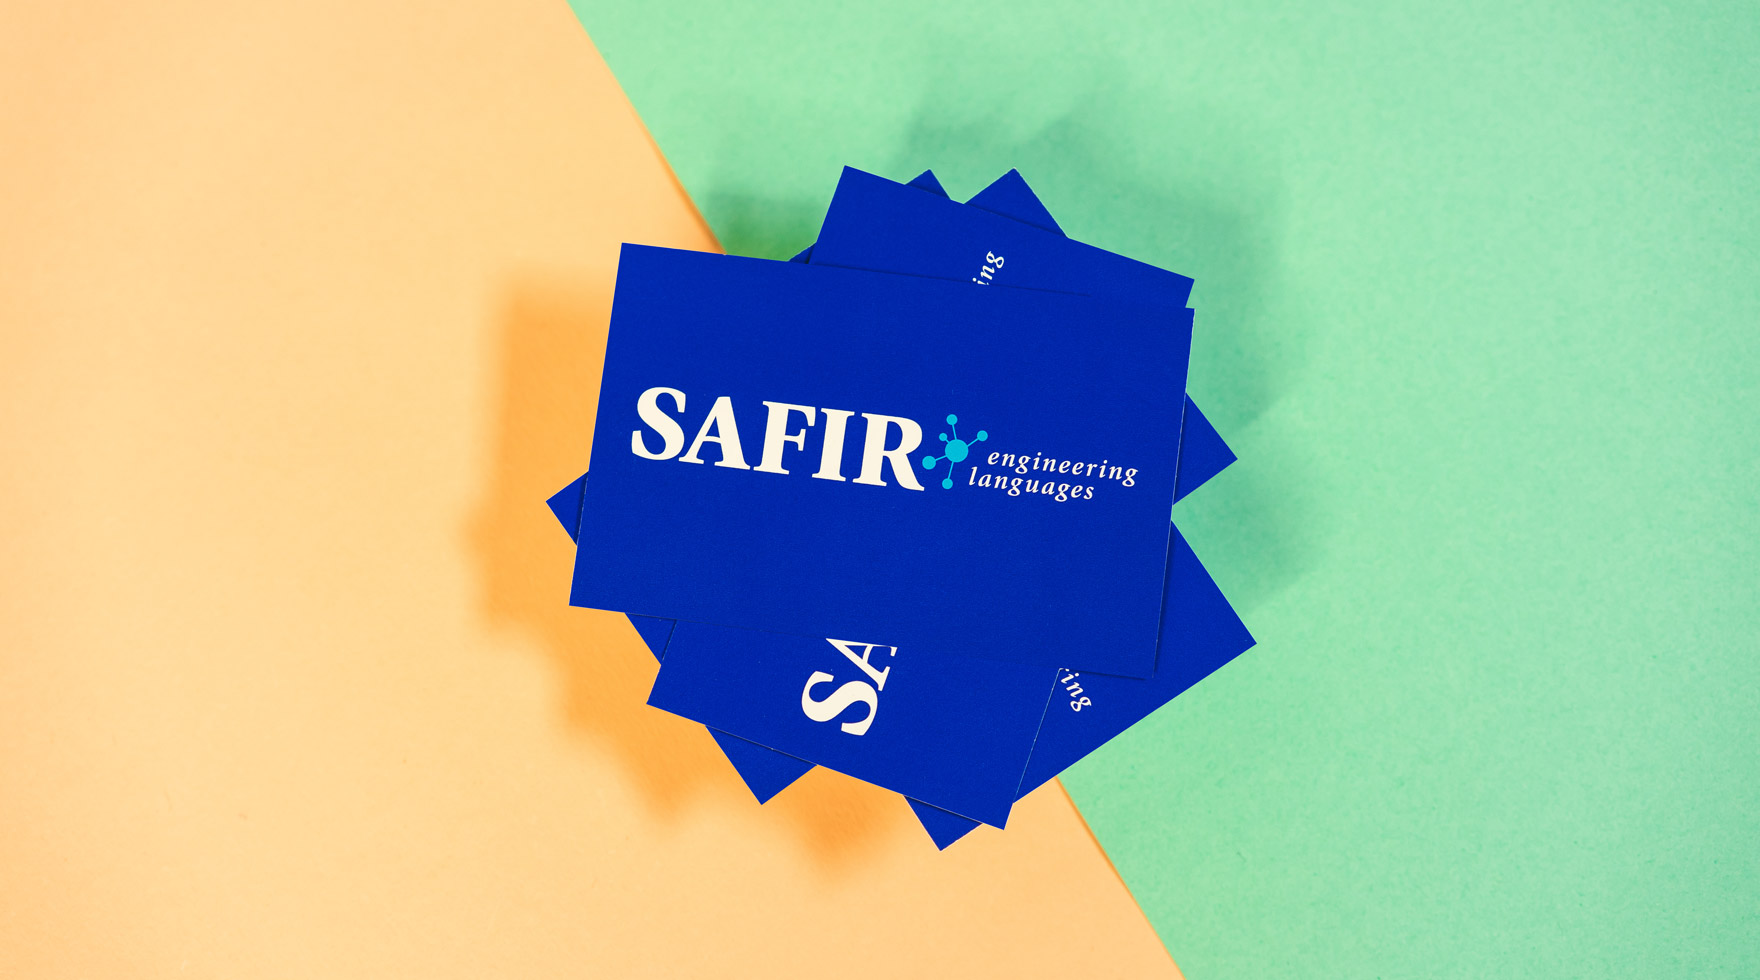 businesscards-design-safir-gmbh-berlin